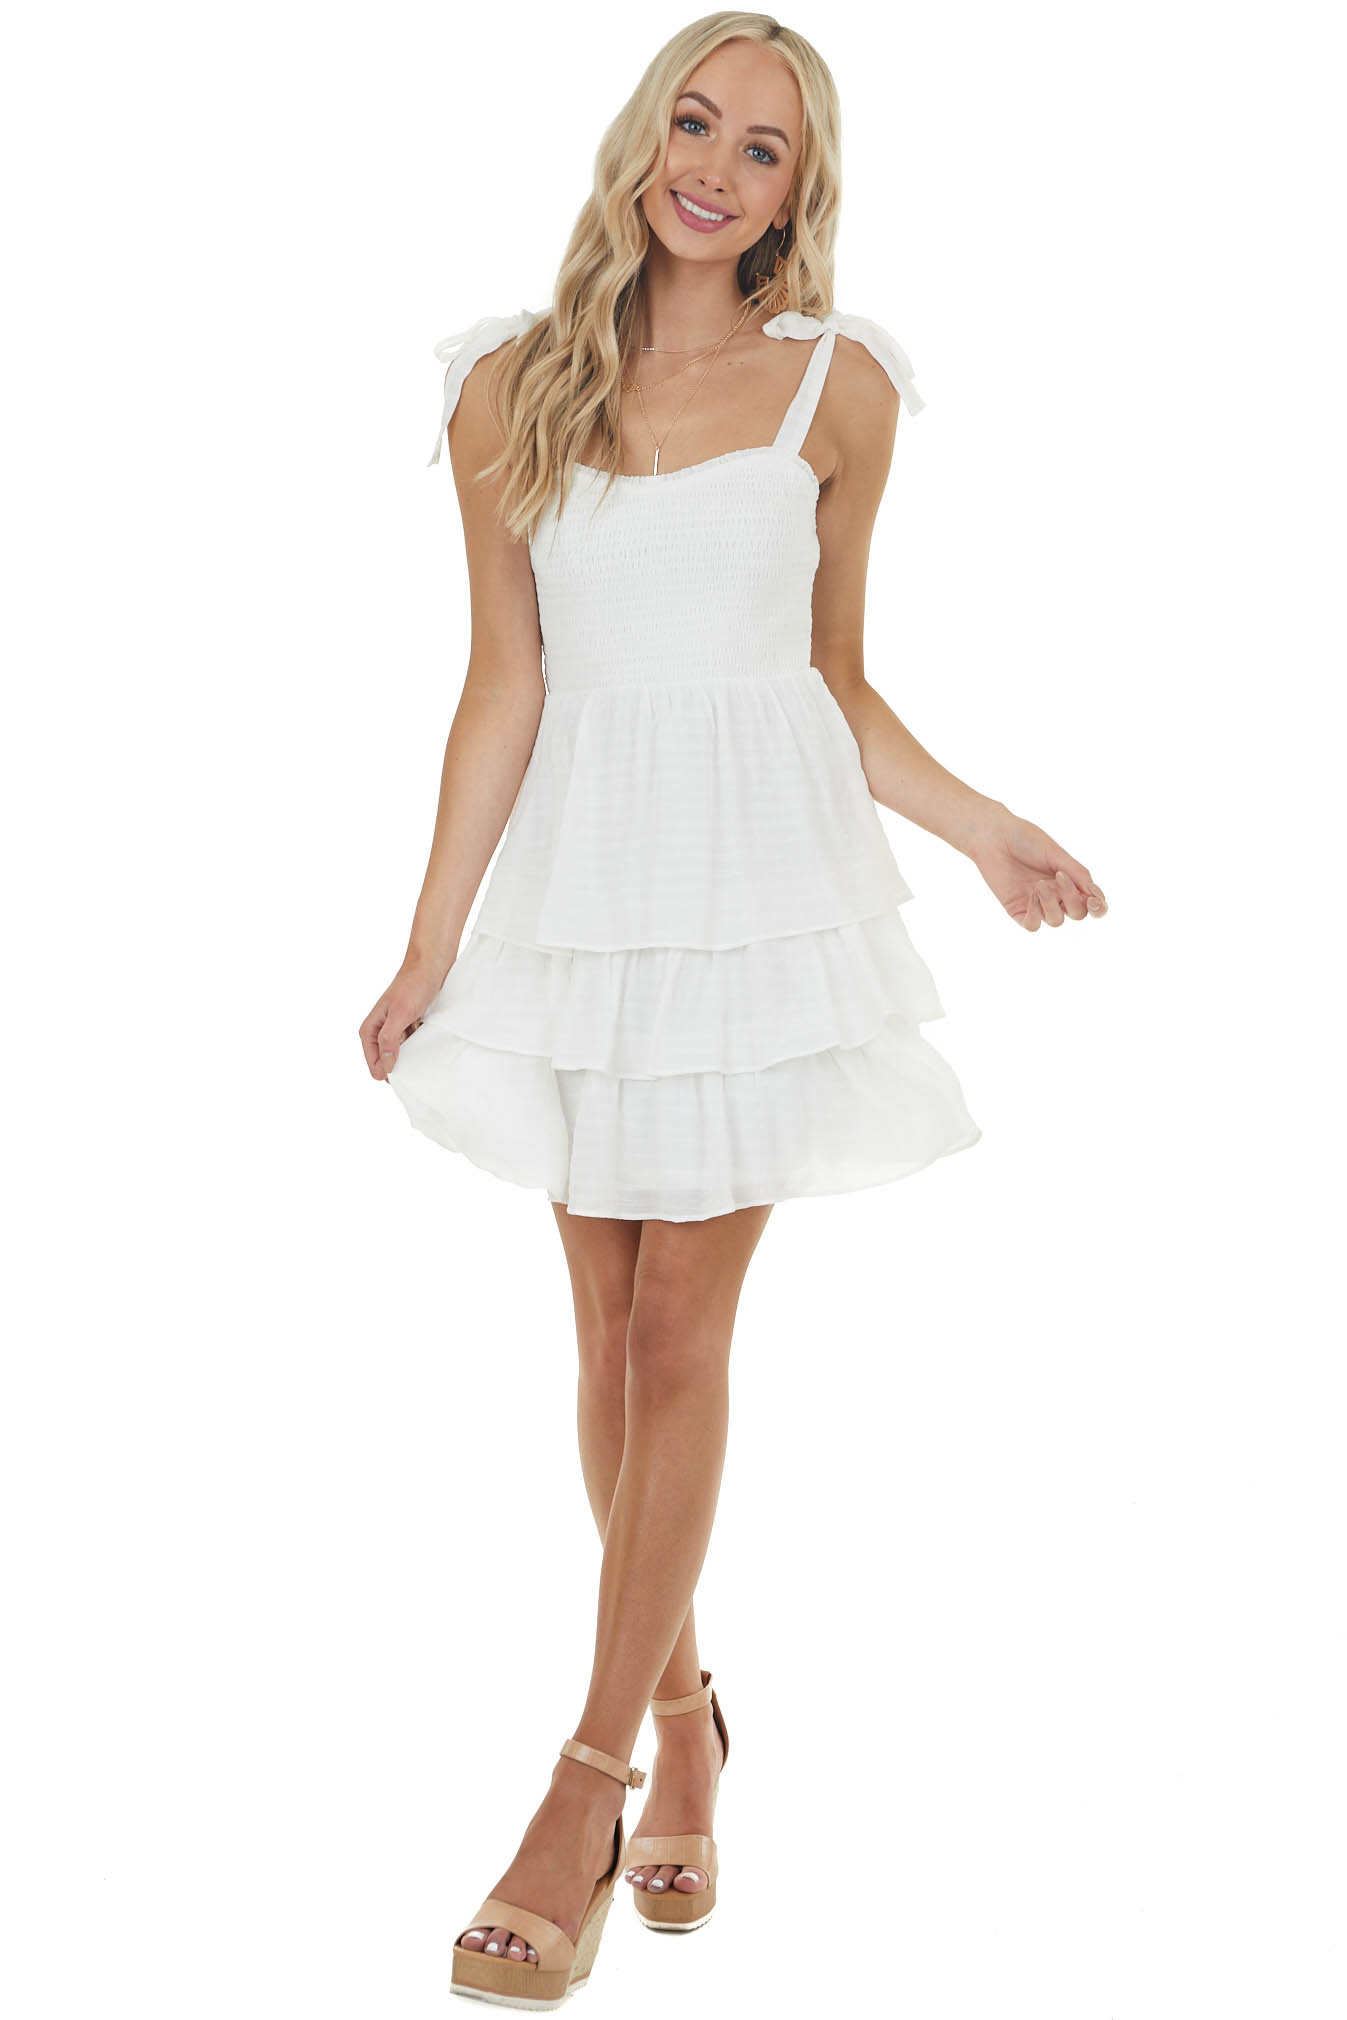 Off White Layered Smocked Mini Dress with Tied Straps